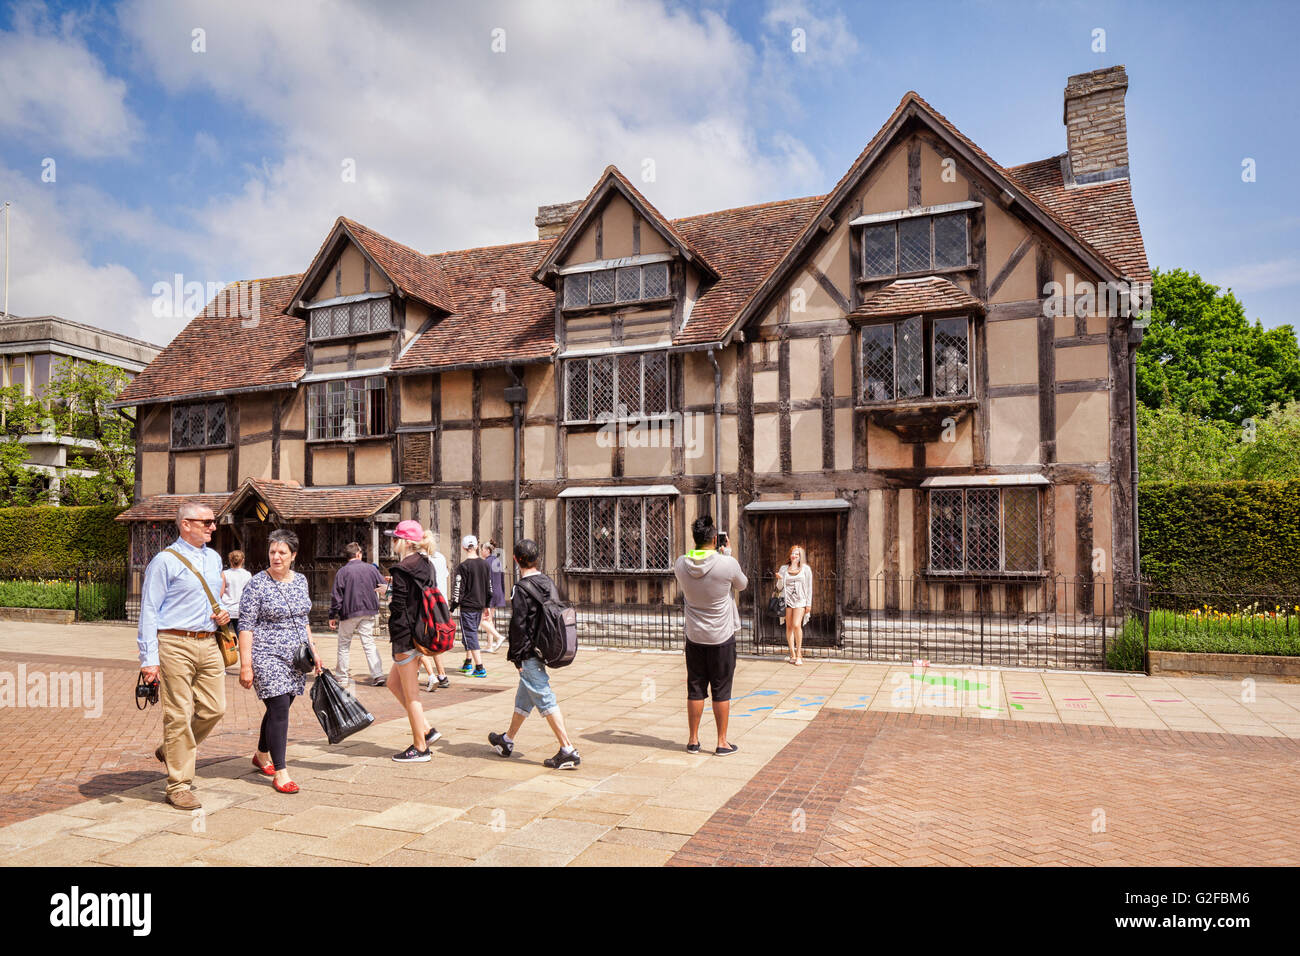 William Shakespeare Birthplace Museum, Stratford-upon-Avone, Warwickshire, England, UK - Stock Image